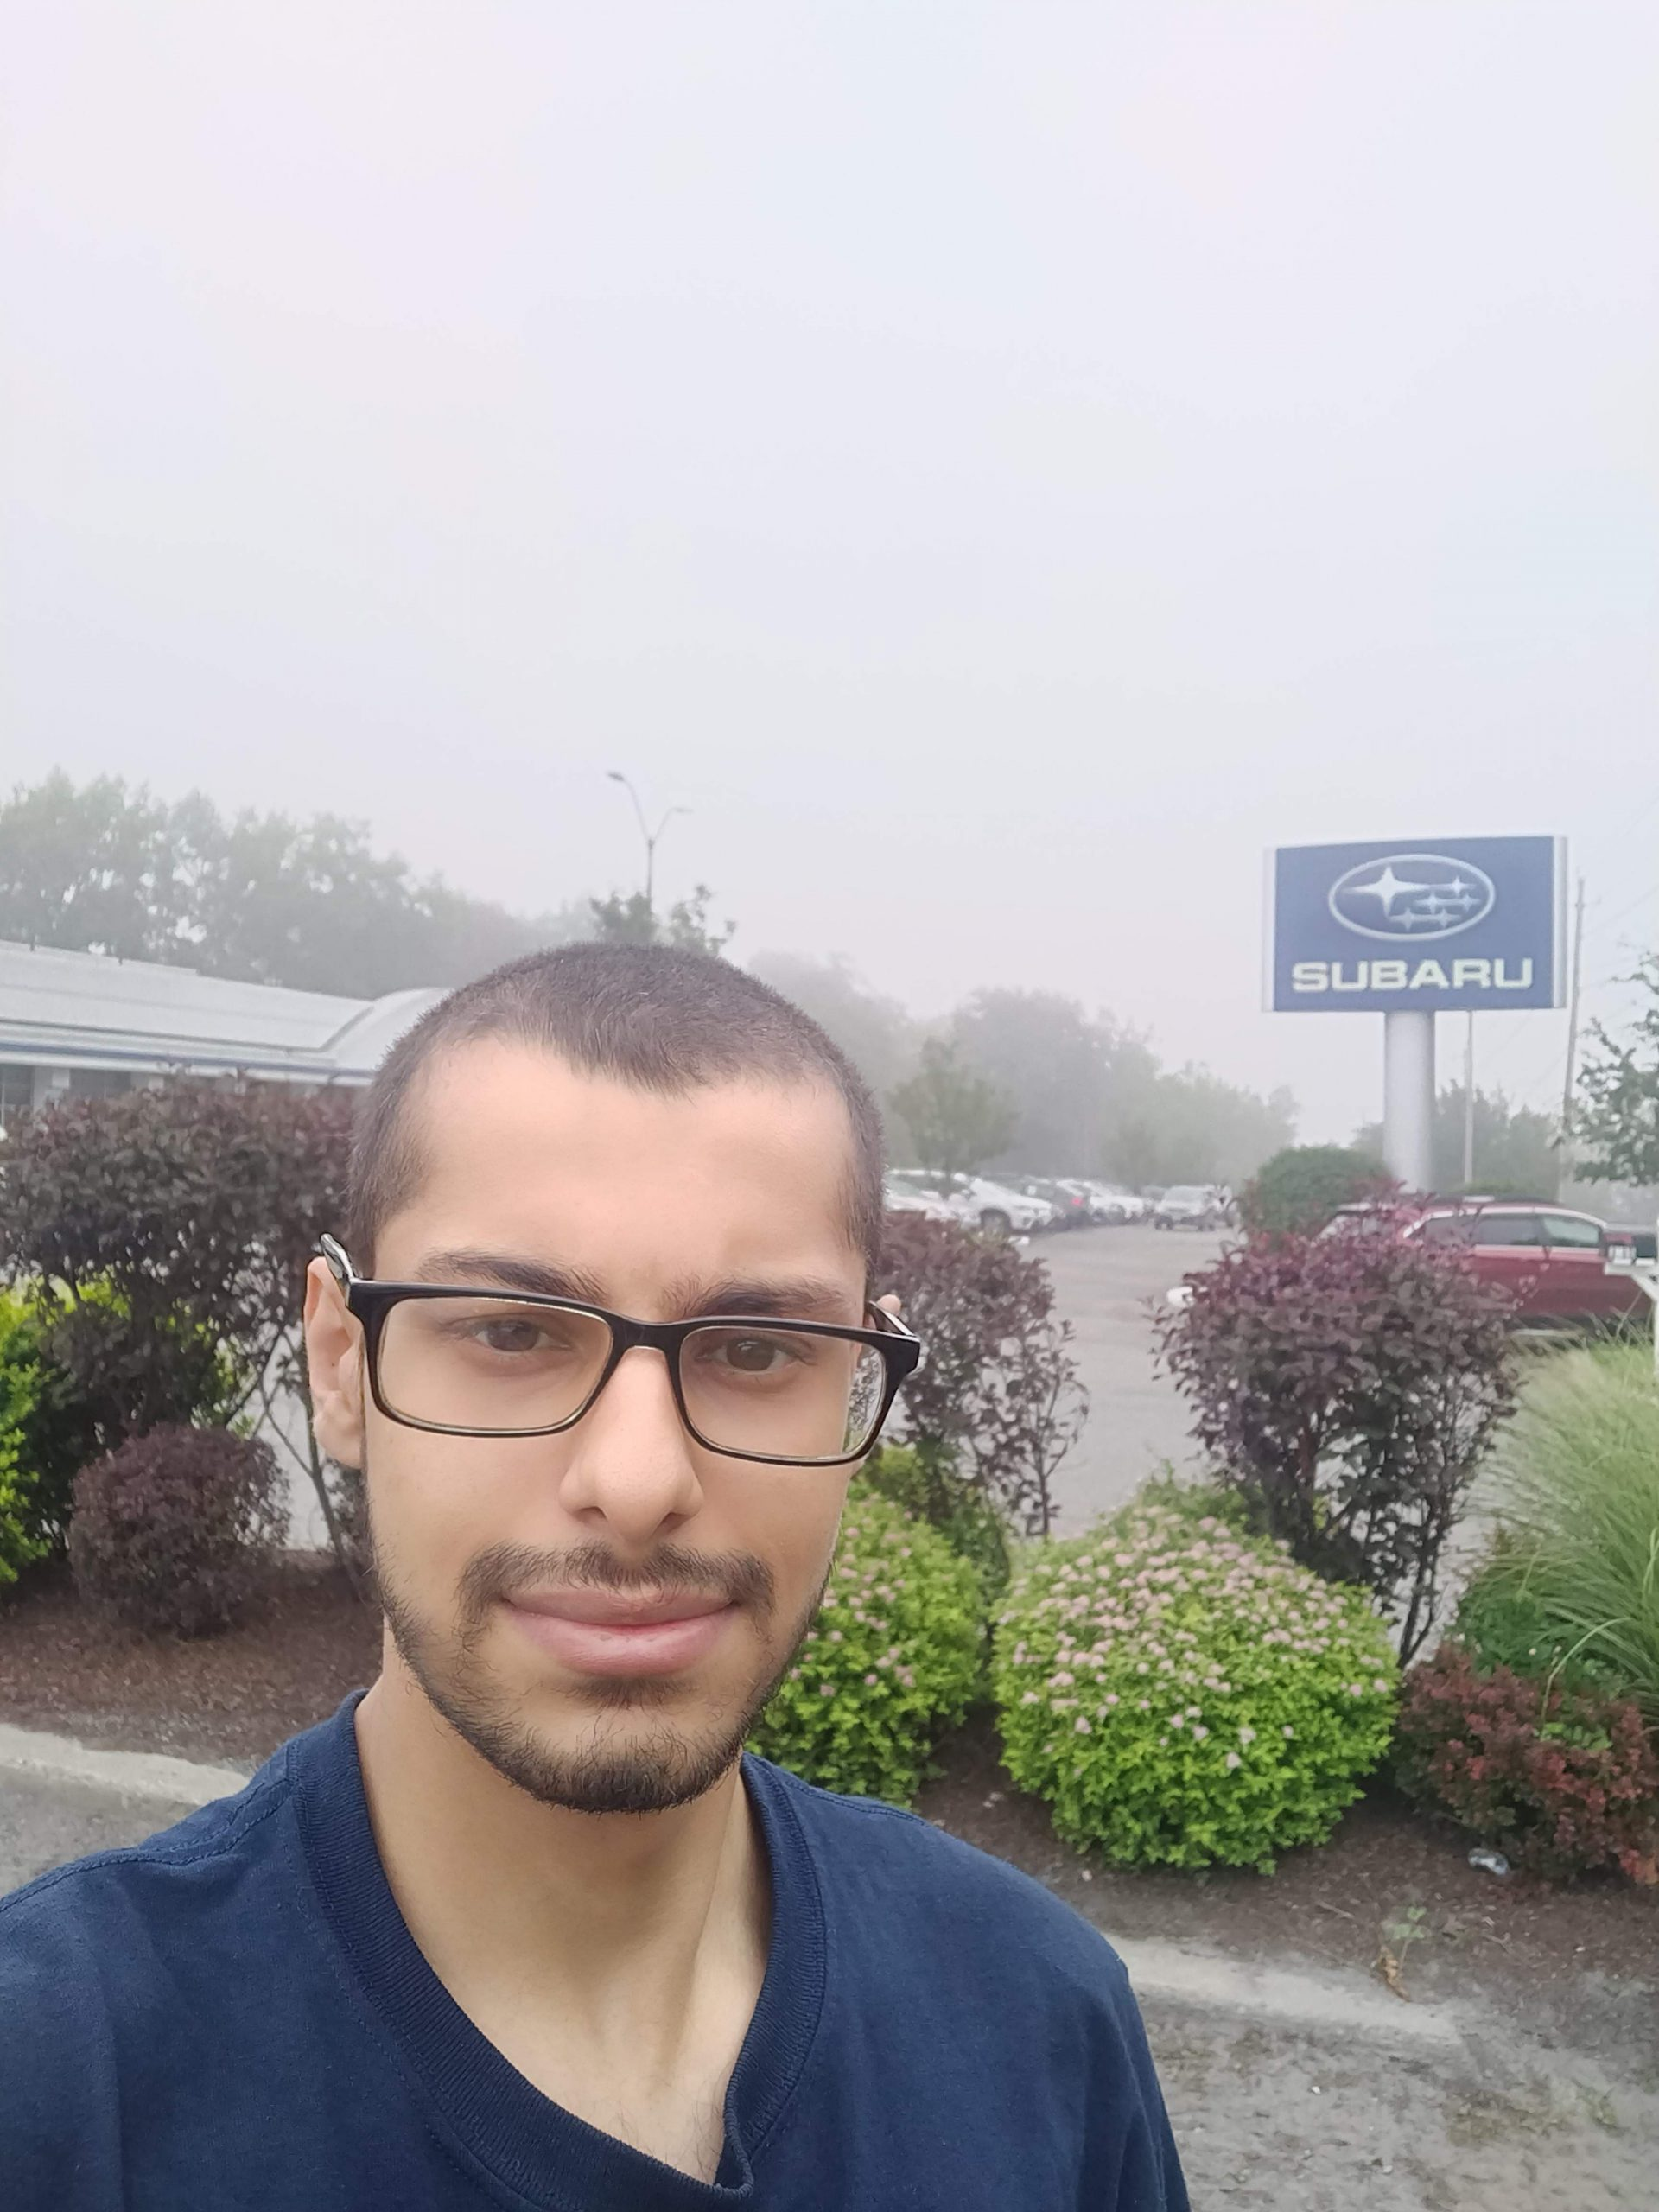 student with black glasses in front of subaru sign